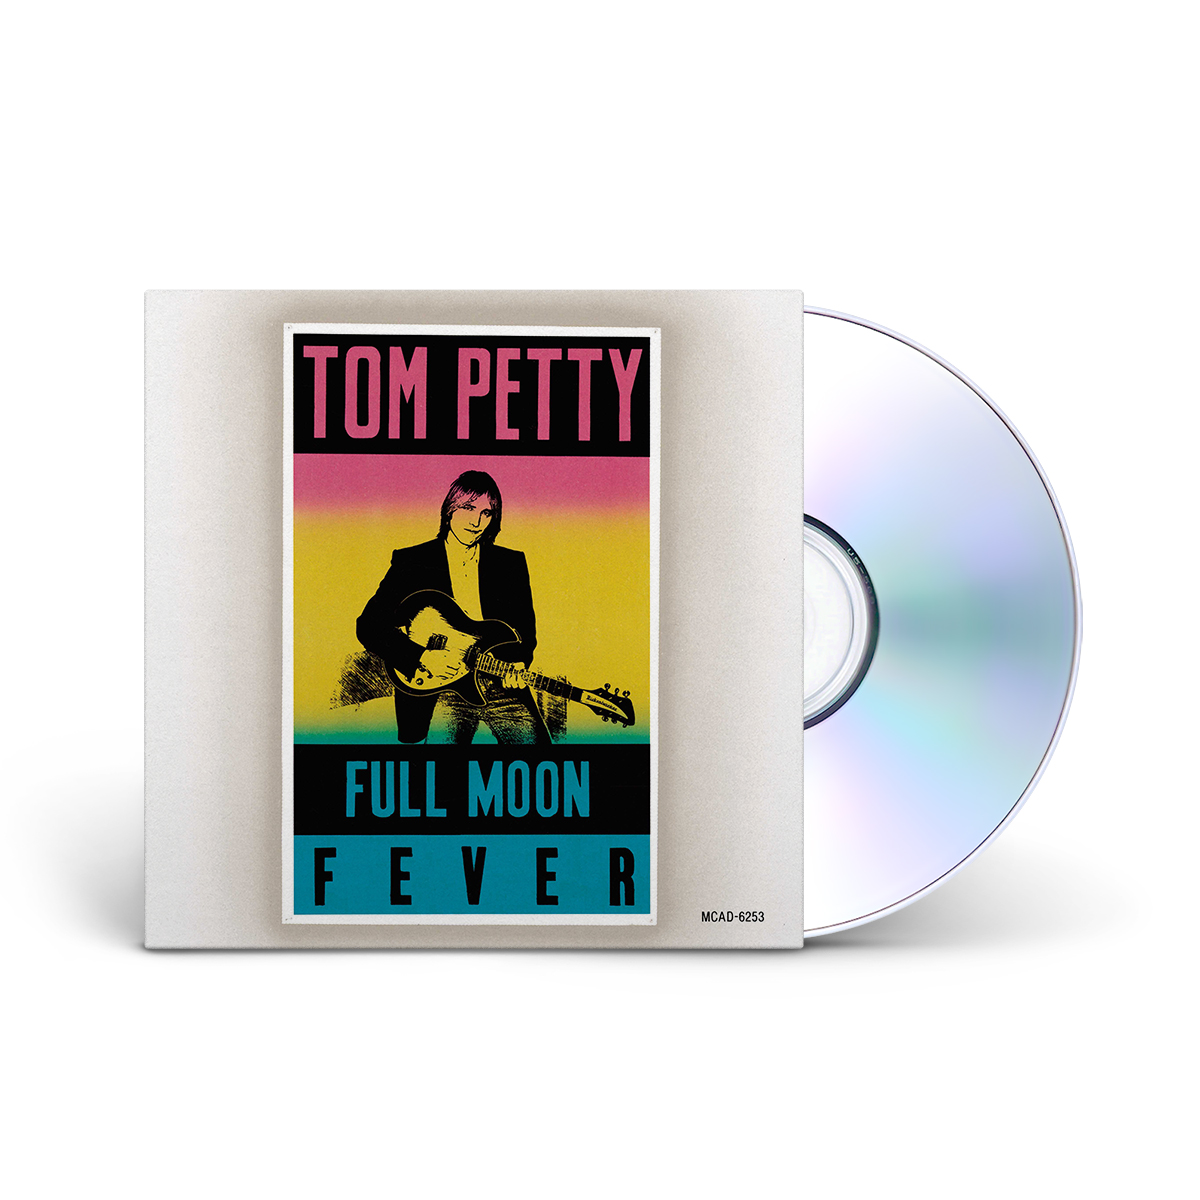 Tom Petty - Full Moon Fever CD